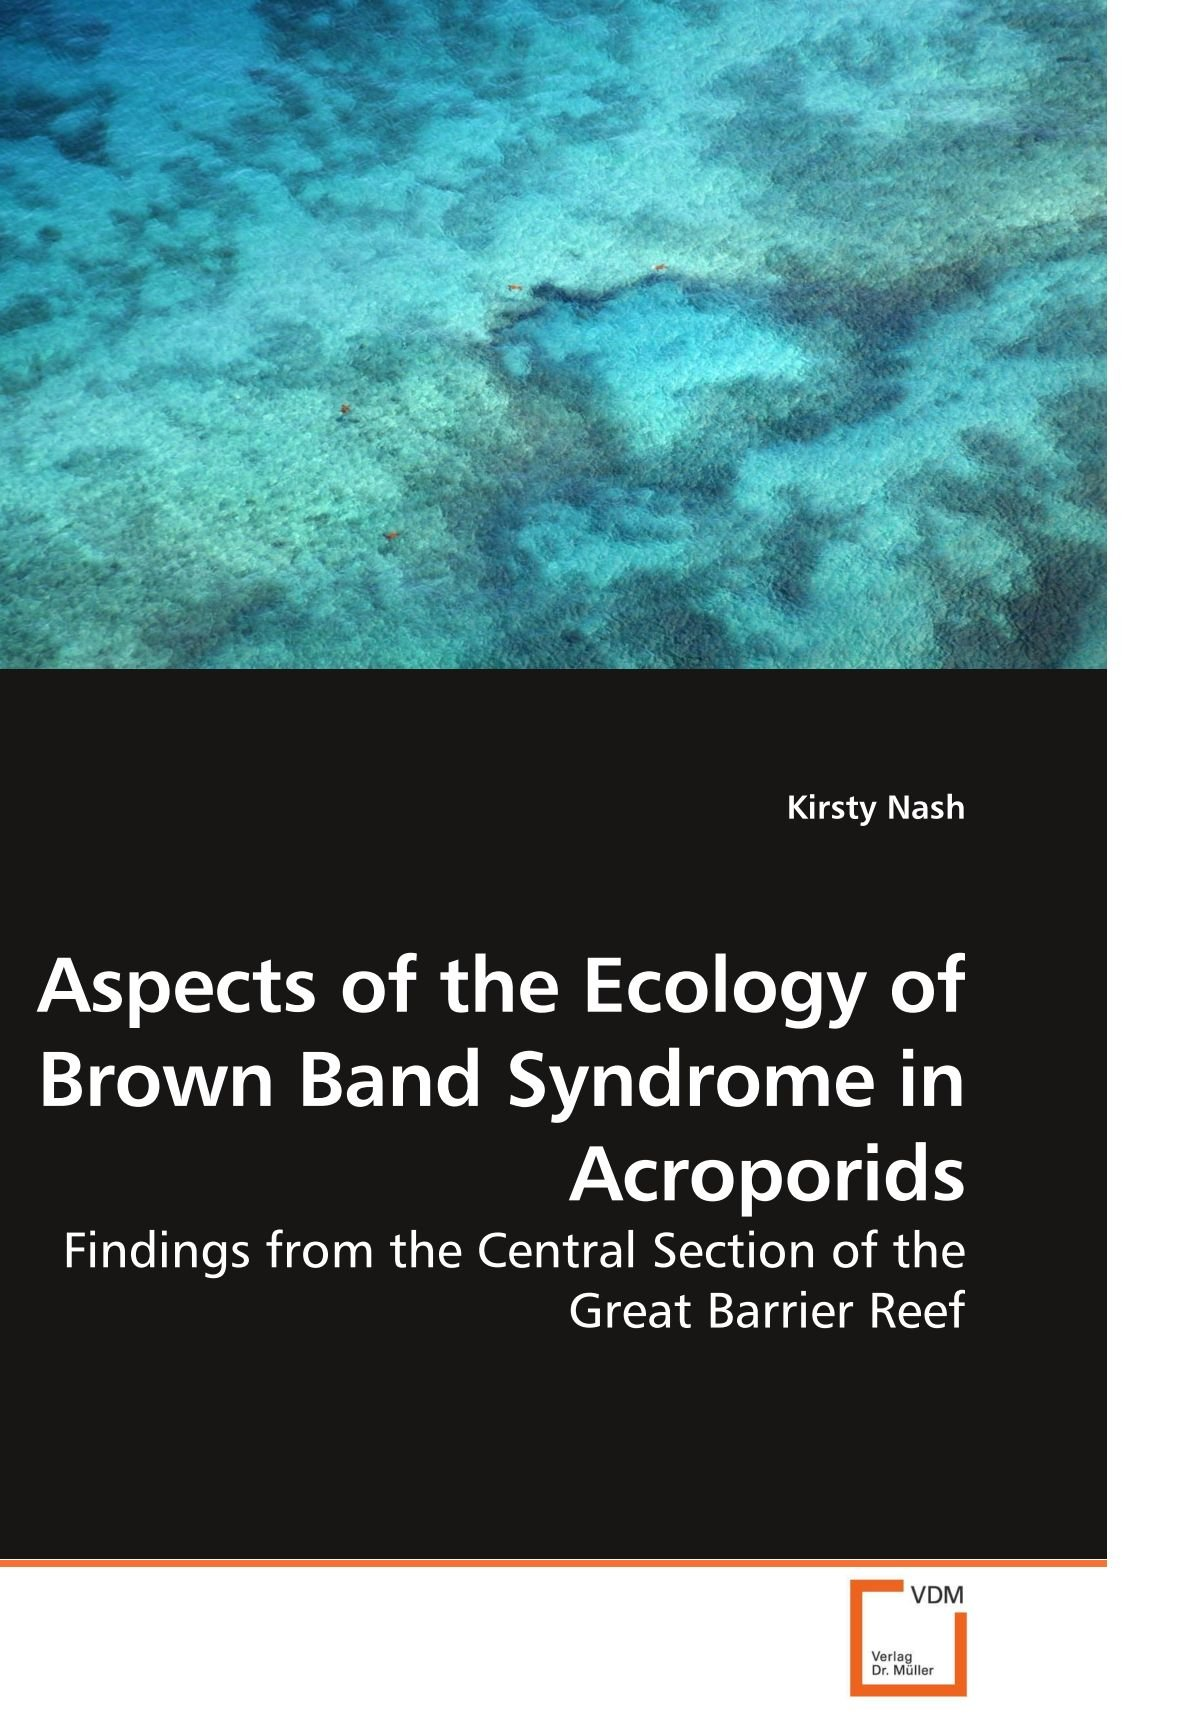 Download Aspects of the Ecology of Brown Band Syndrome in Acroporids: Findings from the Central Section of the Great Barrier Reef pdf epub